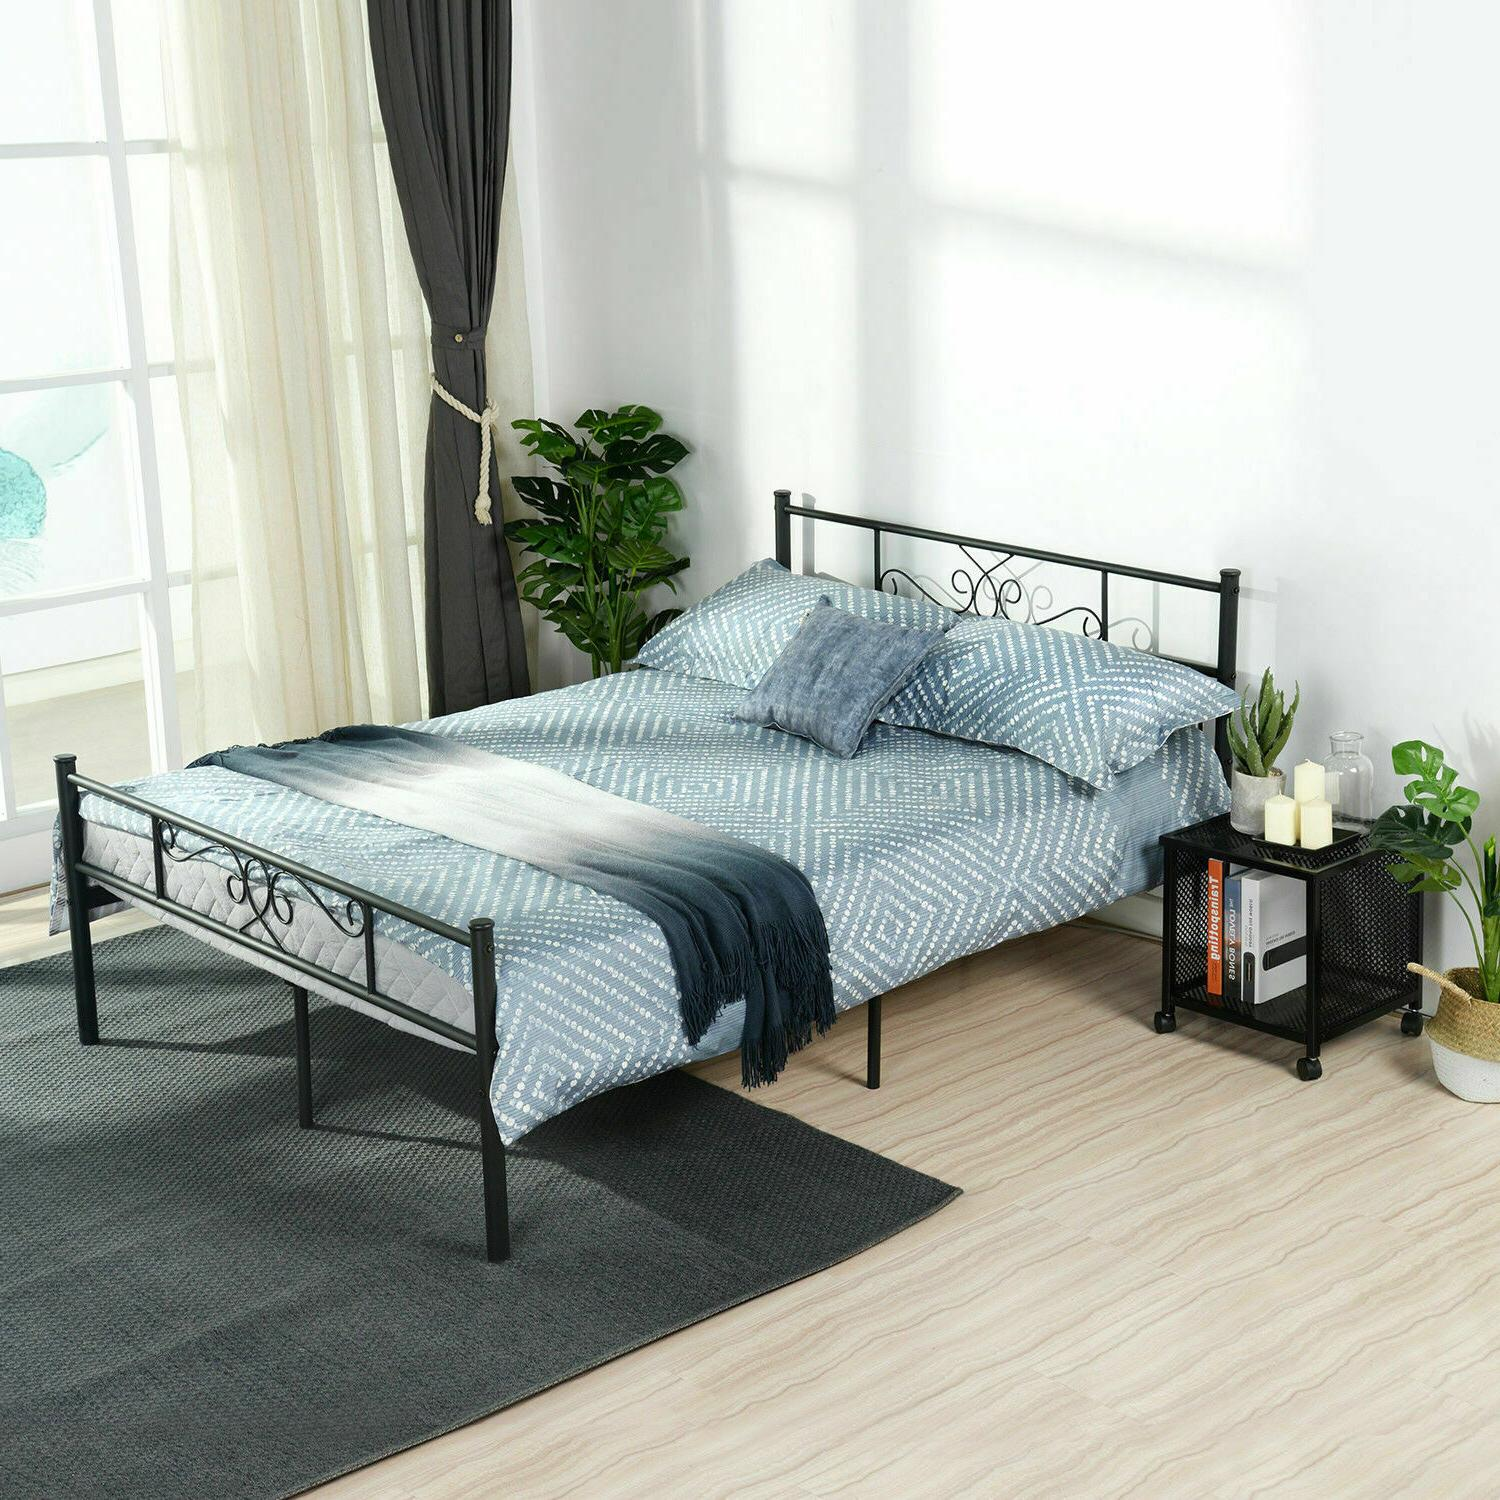 Platform Bed Twin Bed Mattress Headboard